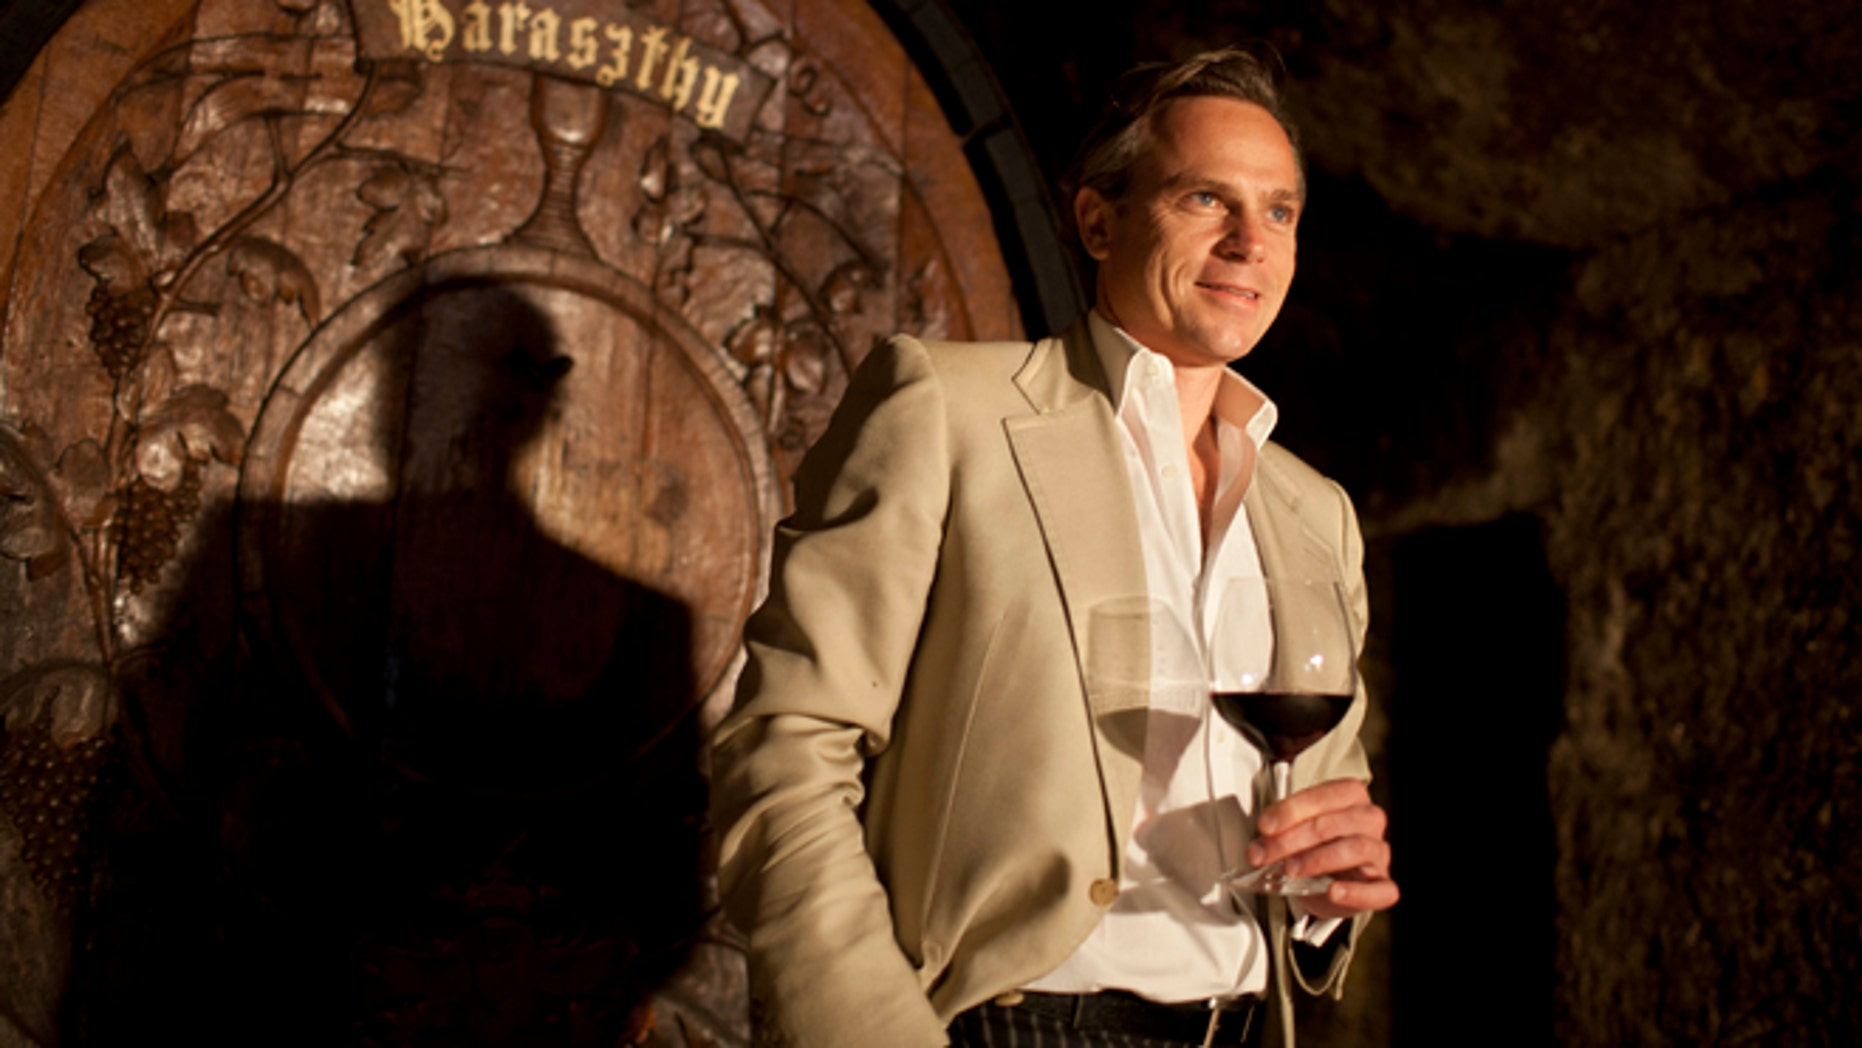 In this photo taken Thursday, Aug. 23, 2012 Jean-Charles Boisset stands inside a cave dating to 1864 and looks out at renovations taking place in the champagne cellar at the Buena Vista Winery in Sonoma, Calif. Many people think the California wine world came of age in 1976 after a famous tasting in Paris put the Golden States vintages on the world map. But for Boisset, new owner of the states oldest commercial winery, the states fine wine making traditions started a century before that. Thats why the Burgundian is building the future of 155-year-old Buena Vista Winery, a landmark known as the birthplace of California wine, on its past. He plans to make wines in September in the stately stone buildings and old wine caves for the first time in two decades. (AP Photo/Eric Risberg)